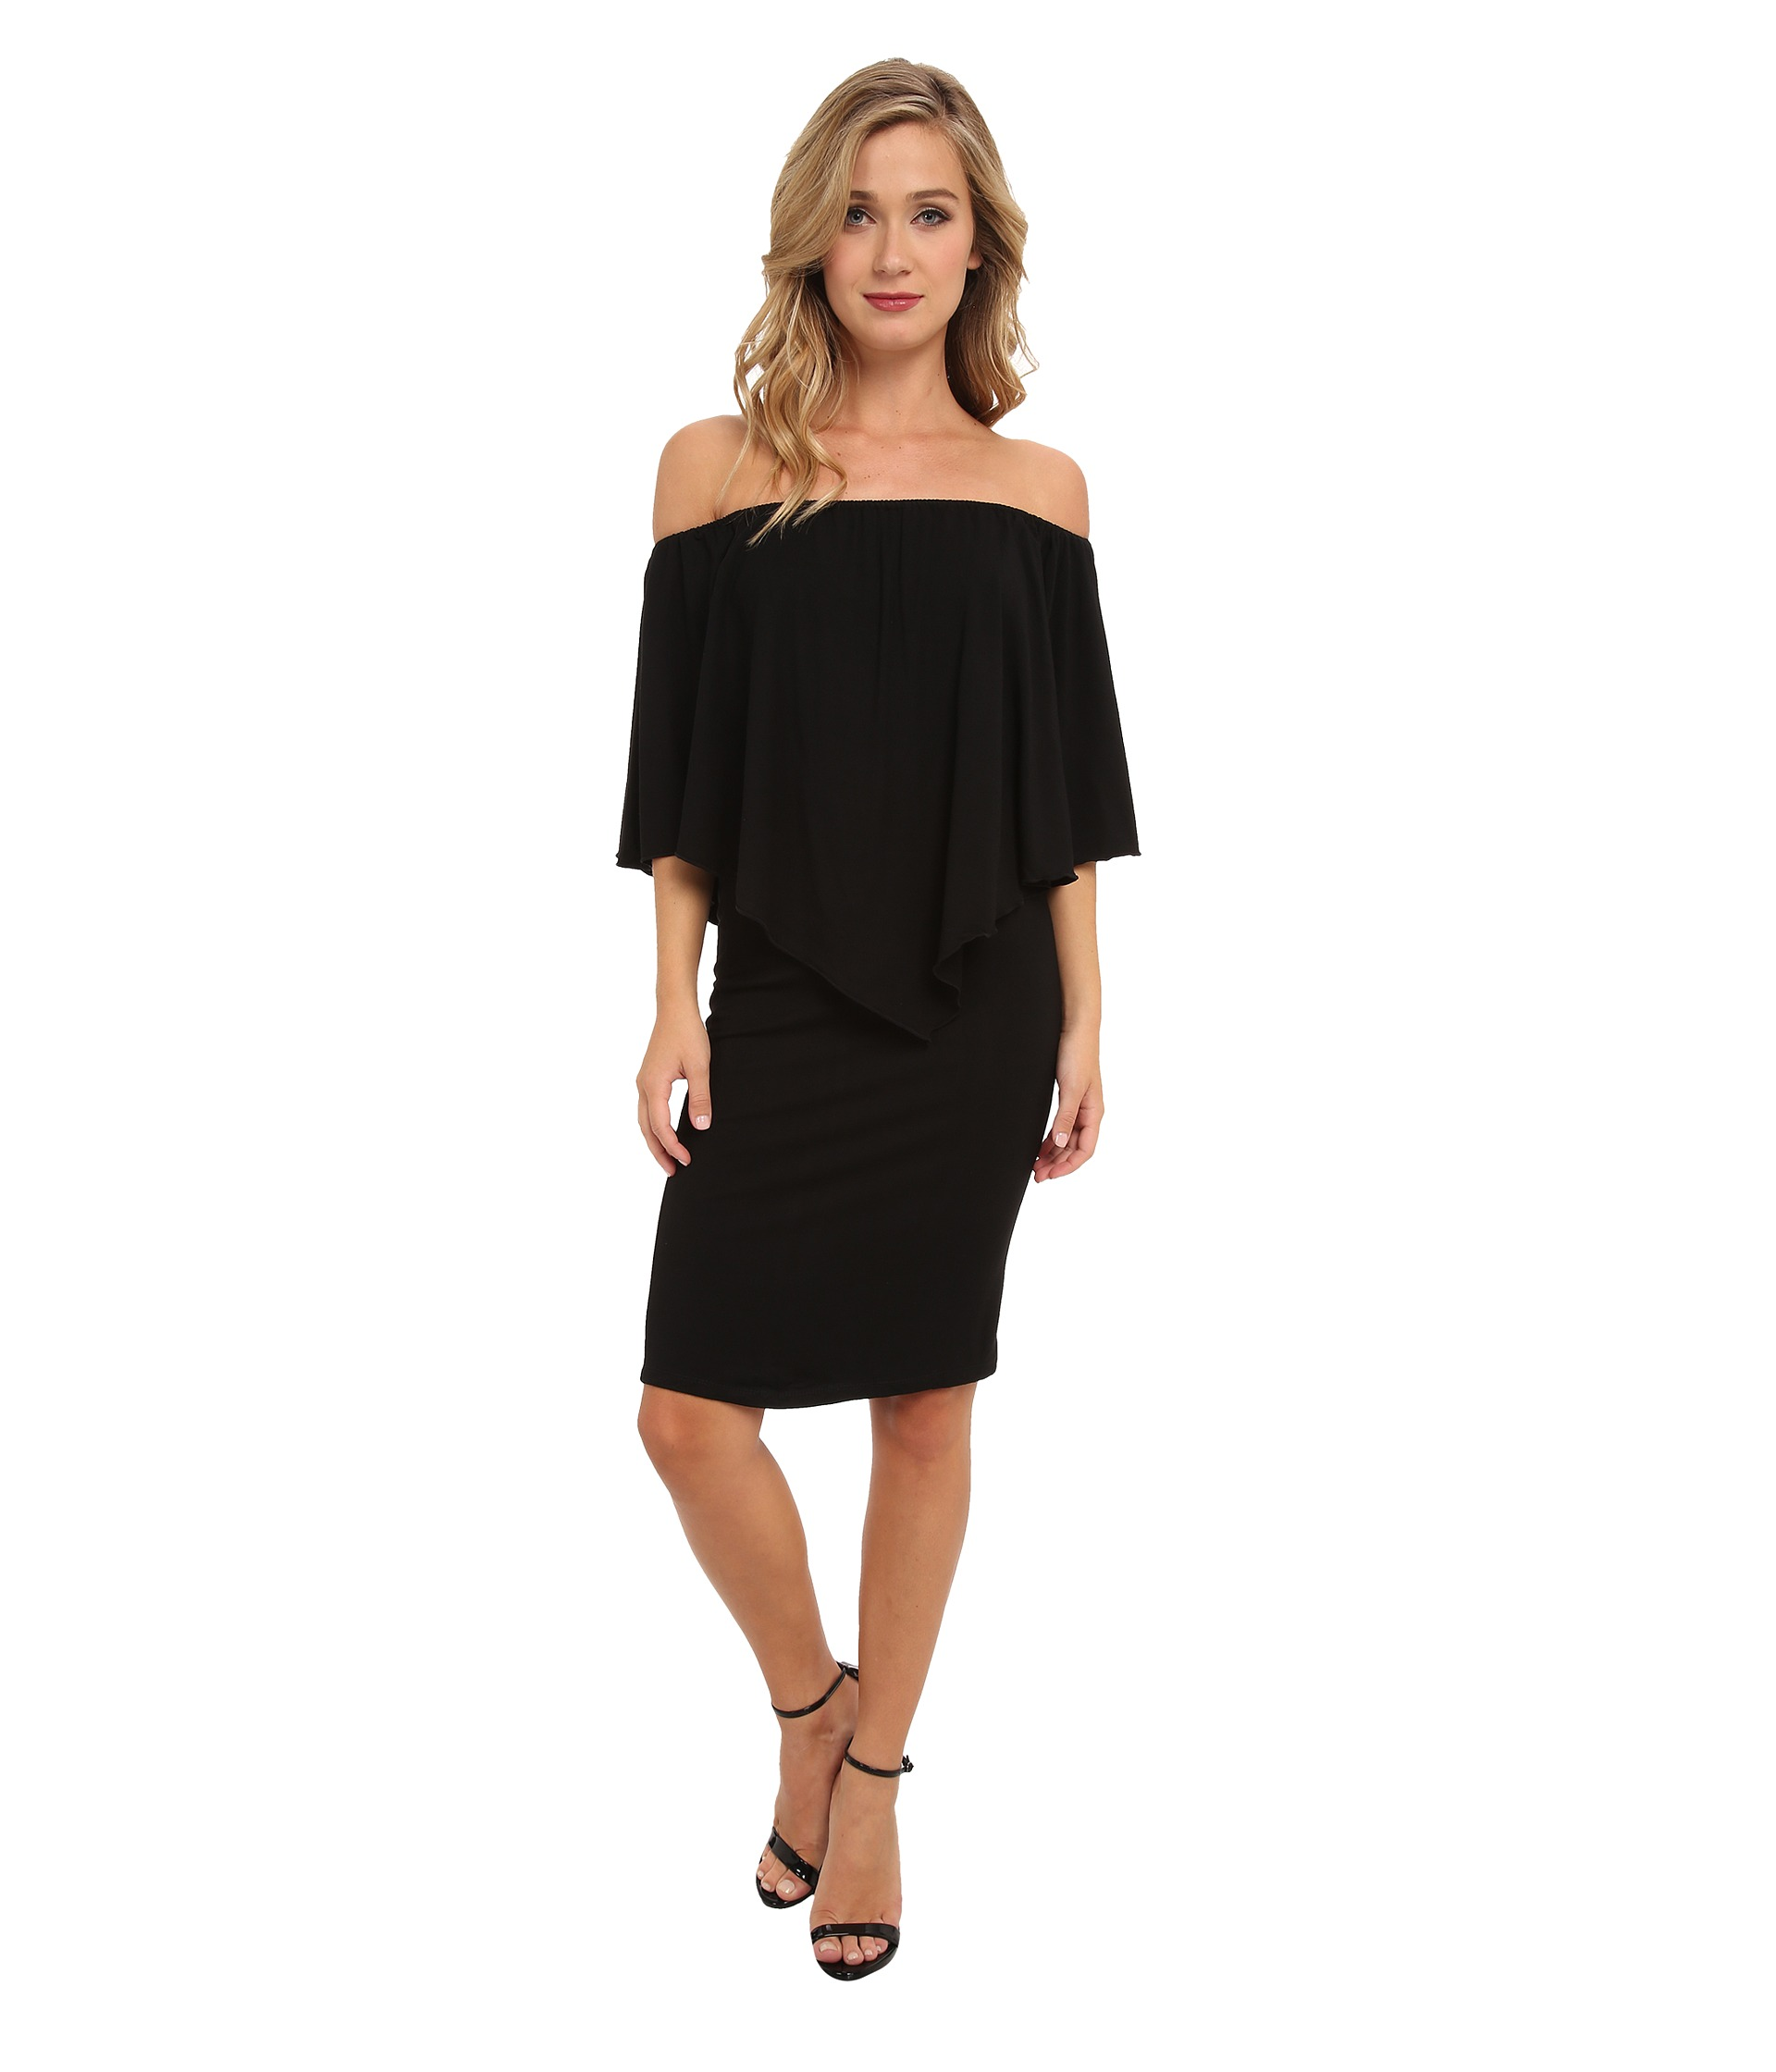 Black Strapless Dress- Clothing- Black- Women - Shipped Free at Zappos